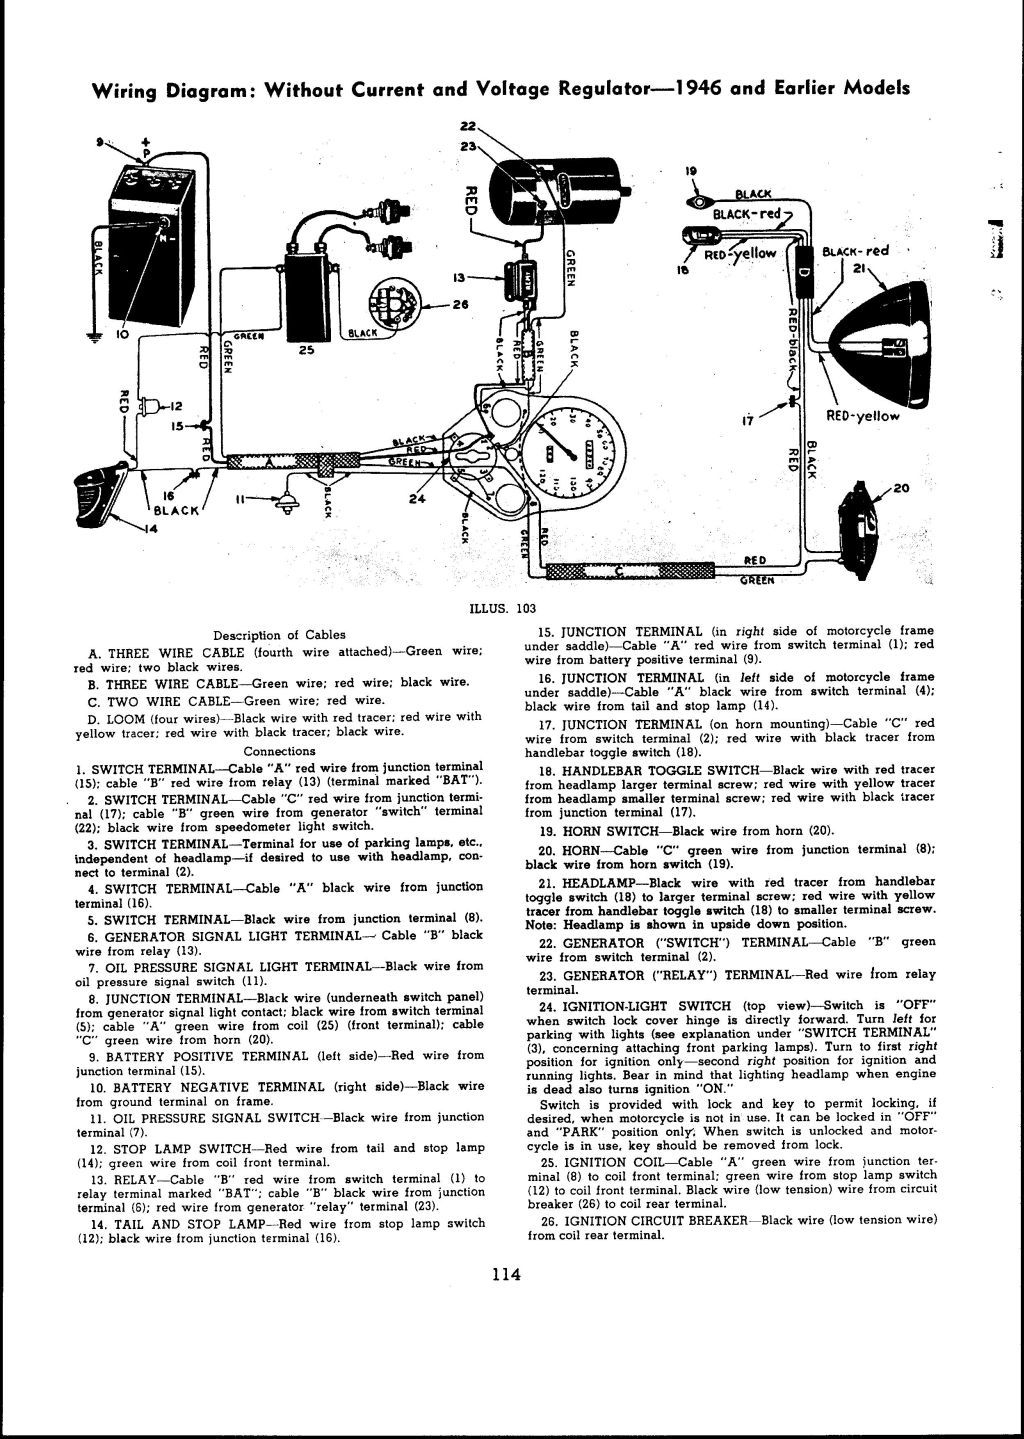 1946 and earlier models Wiring diagram: With current and ... Knucklehead Wiring Diagram on smart car diagrams, electronic circuit diagrams, lighting diagrams, honda motorcycle repair diagrams, switch diagrams, electrical diagrams, internet of things diagrams, battery diagrams, series and parallel circuits diagrams, transformer diagrams, led circuit diagrams, troubleshooting diagrams, pinout diagrams, hvac diagrams, engine diagrams, friendship bracelet diagrams, sincgars radio configurations diagrams, gmc fuse box diagrams, motor diagrams,